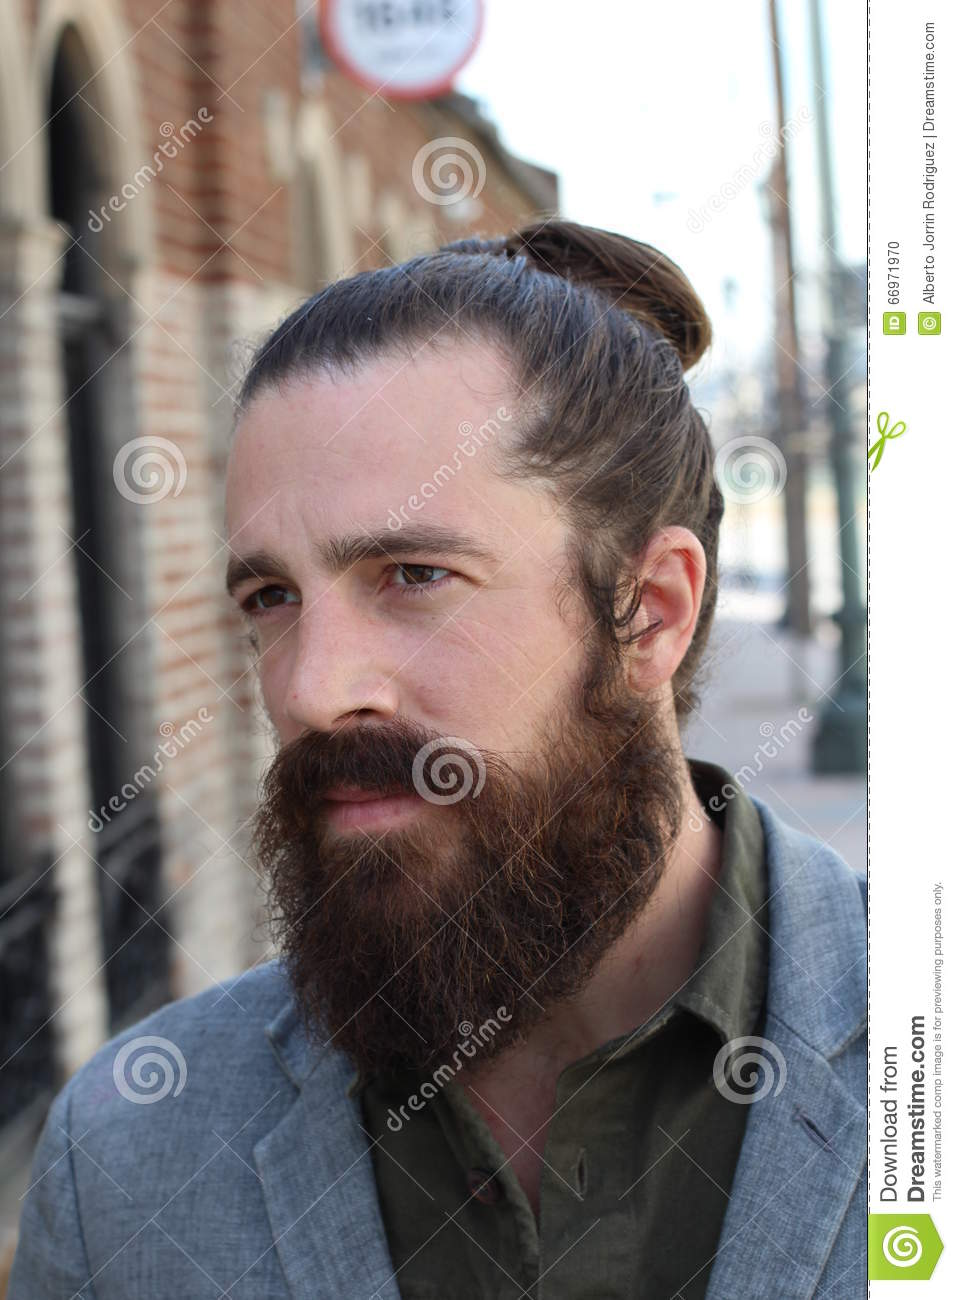 Bearded Hipster Model With Man Bun Hairstyle Stock Photo